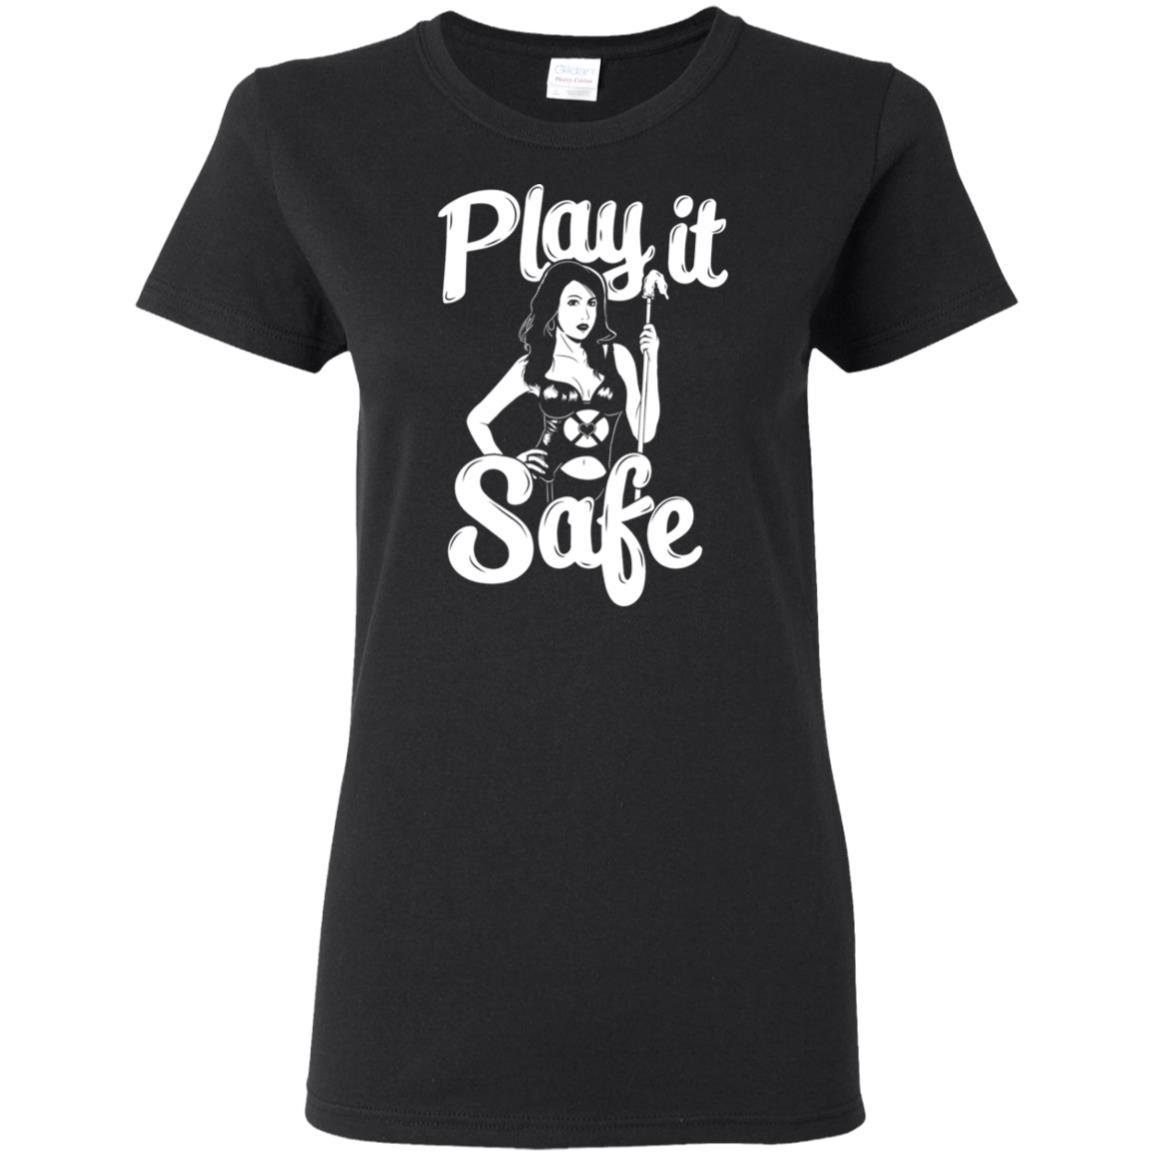 Play it Safe Ladies Tee